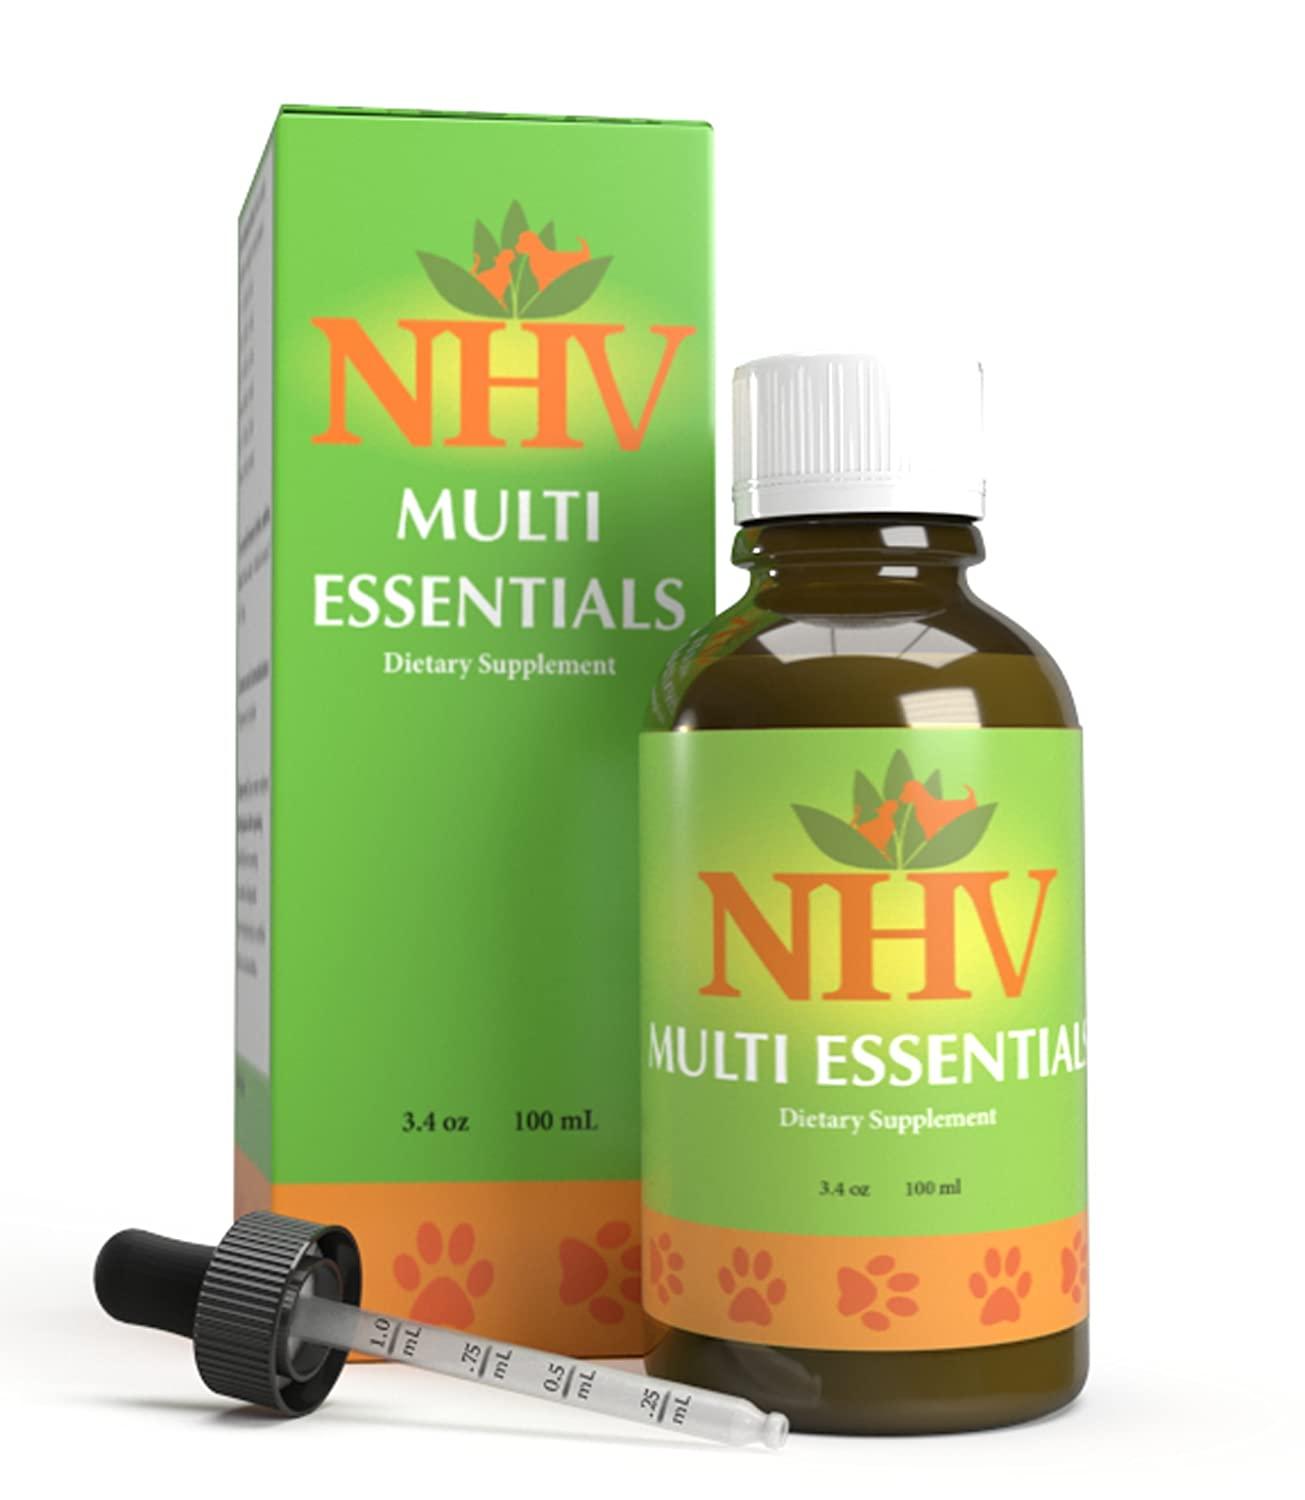 NHV Pet Multivitamin for Dogs & Cats   Natural Energy Booster Multivitamin Multi Essentials